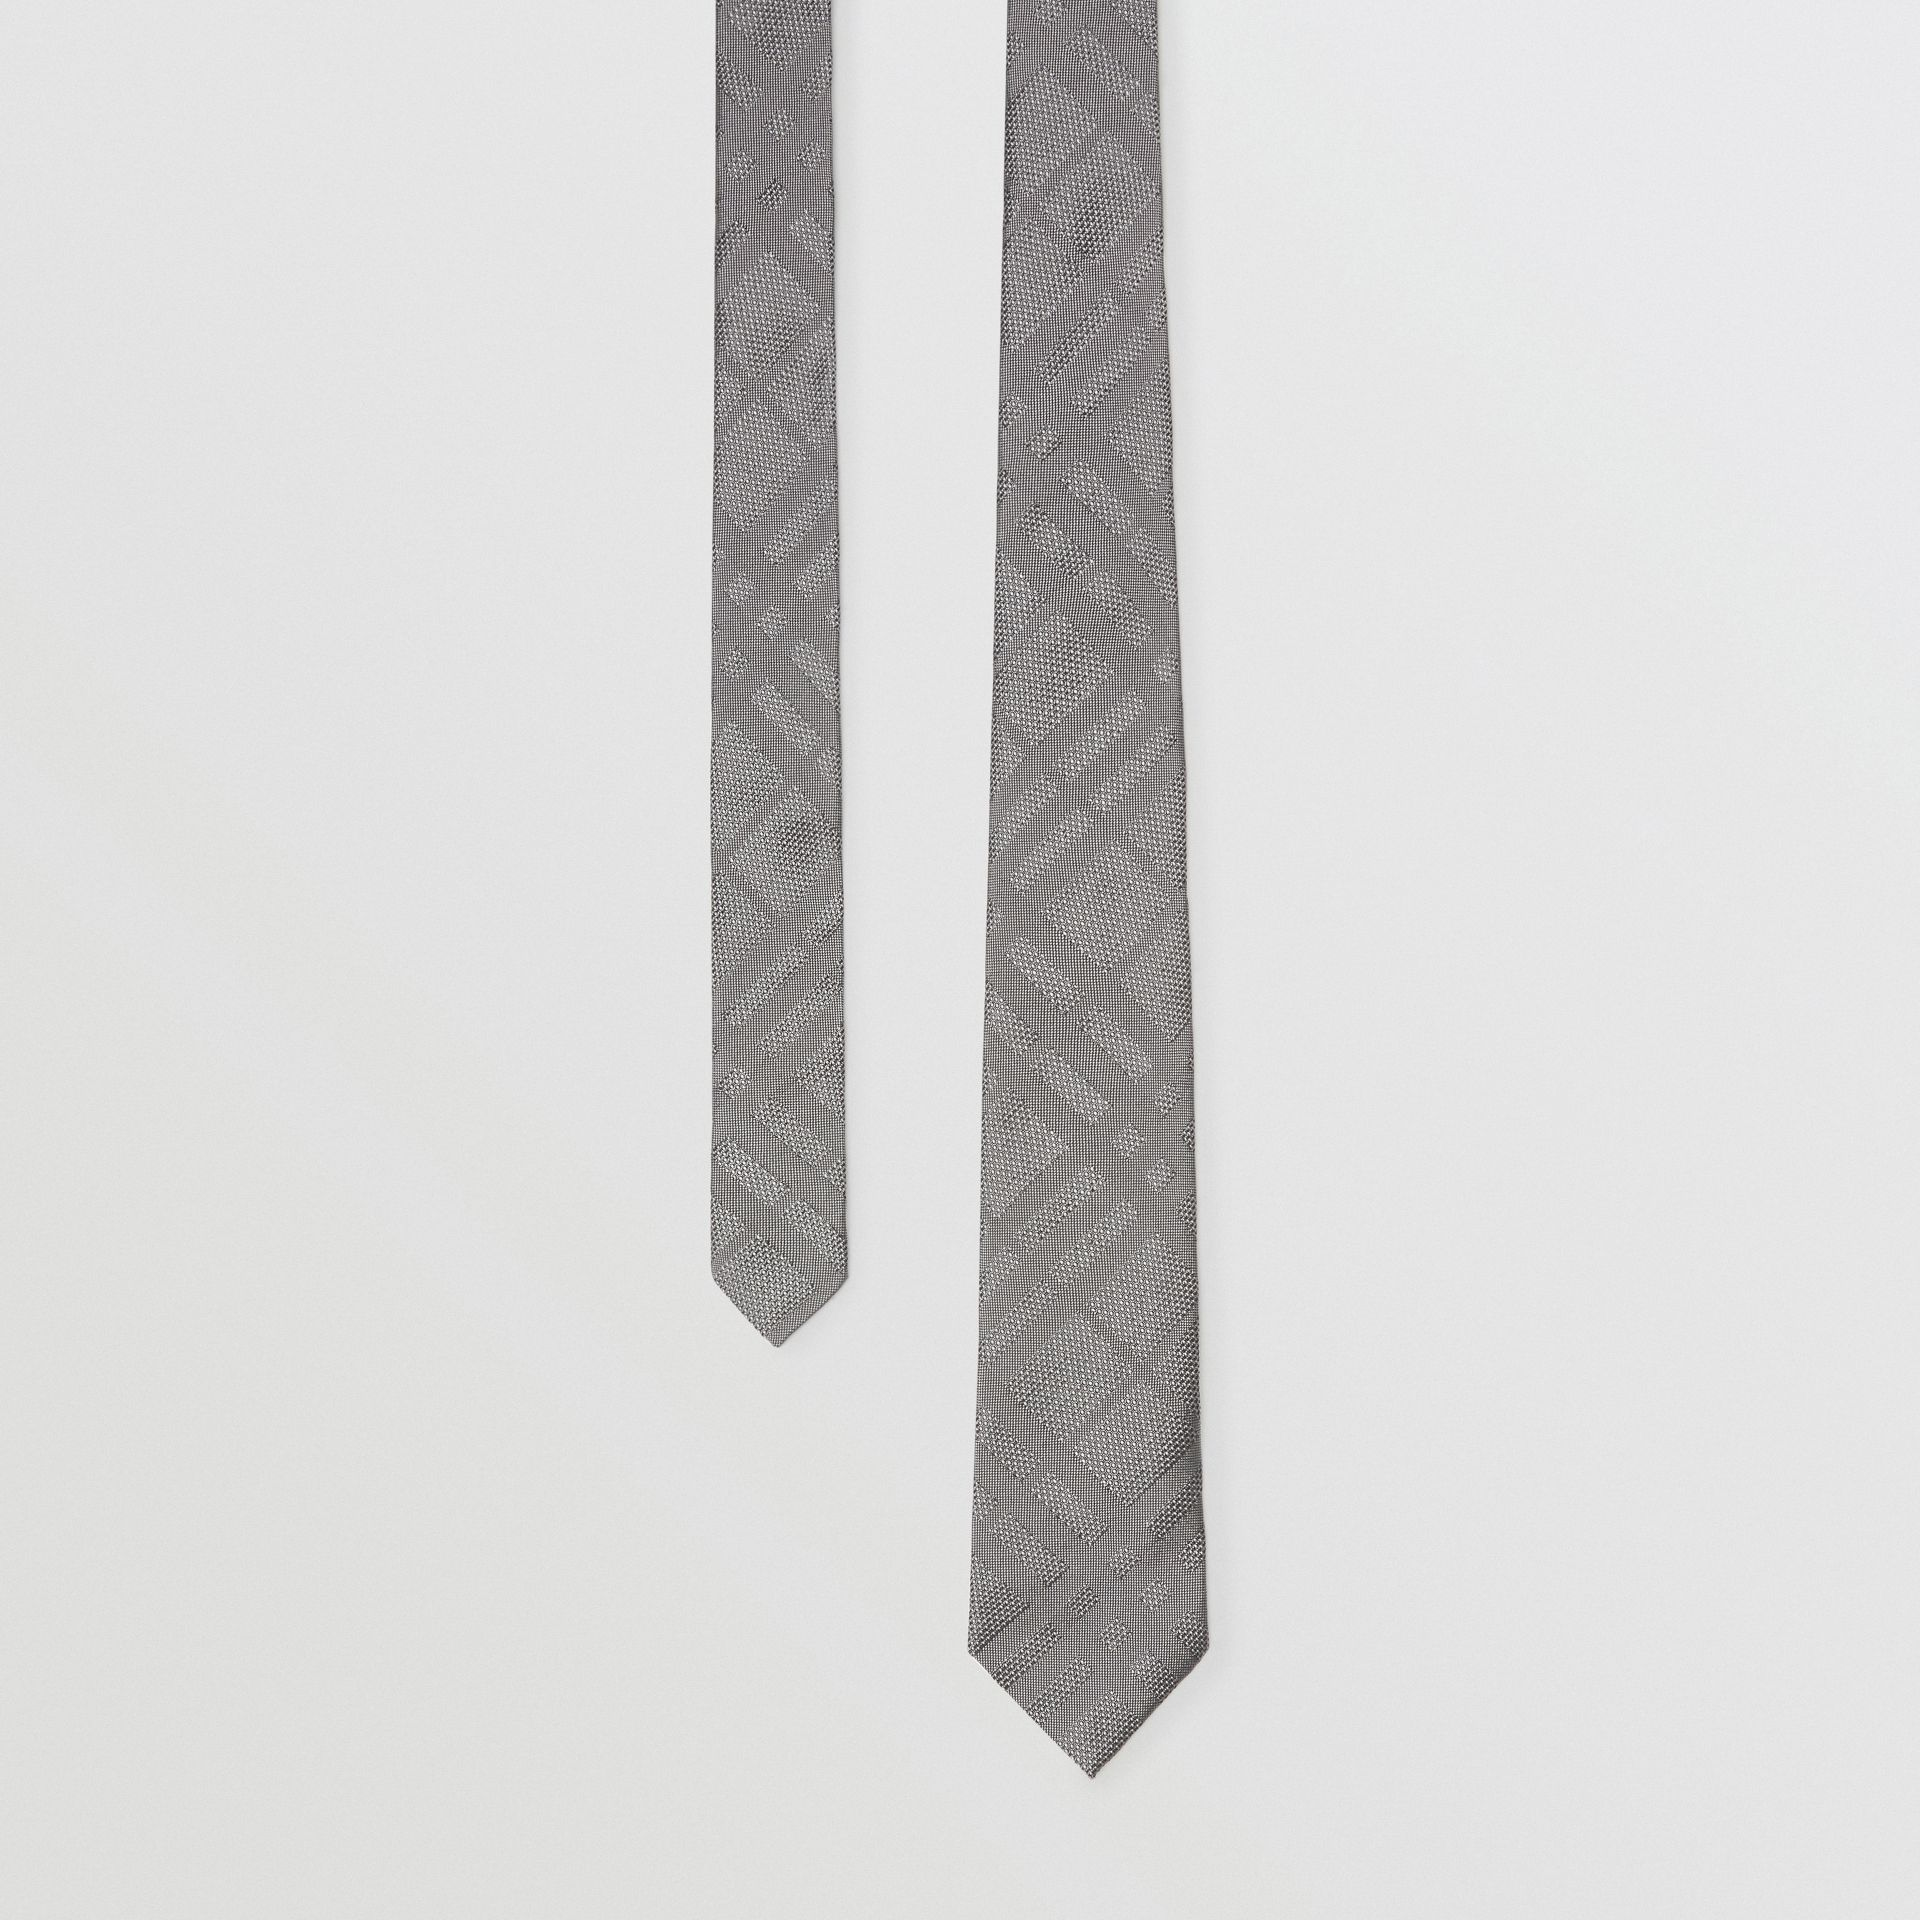 Classic Cut Check Silk Jacquard Tie in Charcoal - Men | Burberry Australia - gallery image 0